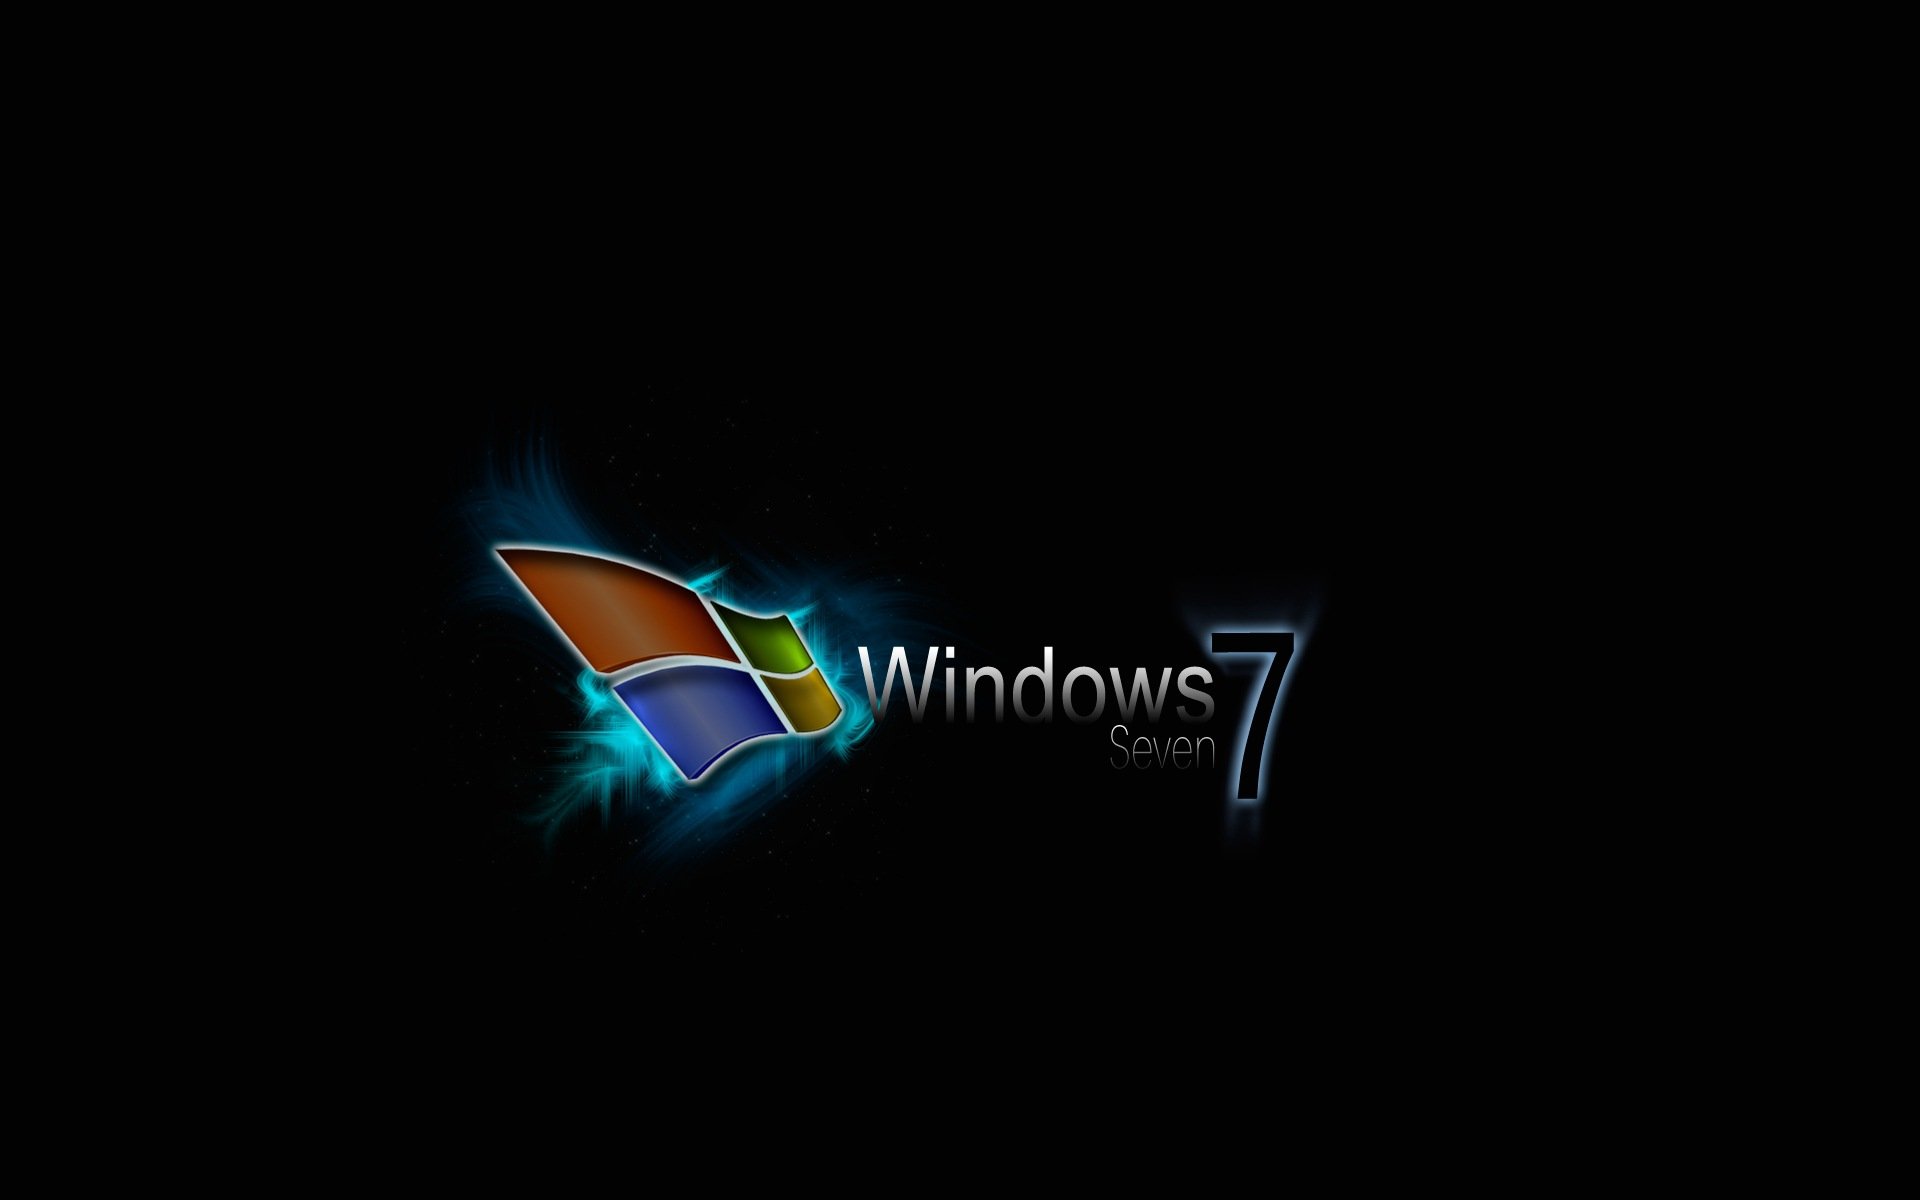 wallpaper-windows_seven-28853